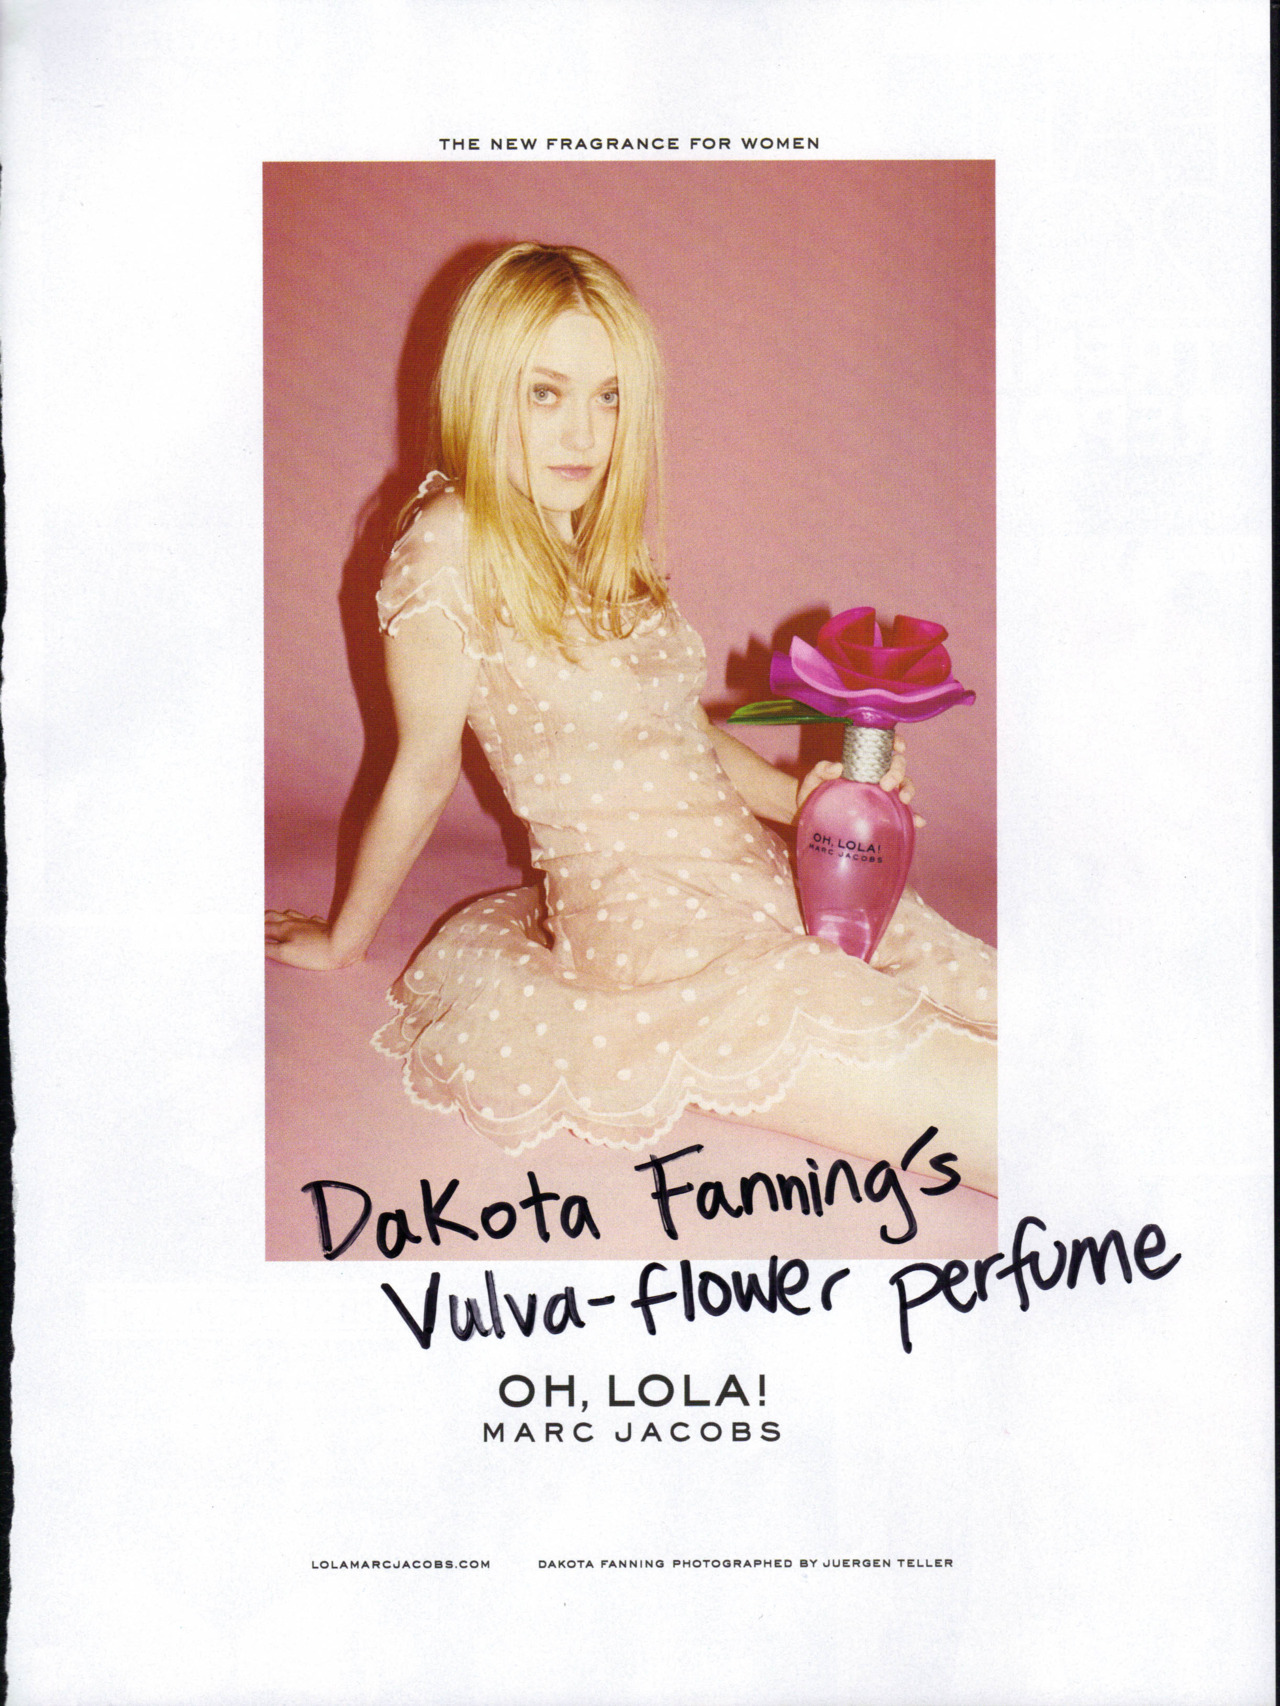 Dakota Fanning was 17 when this ad was made. It was banned in Britain for over-sexualizing a minor.